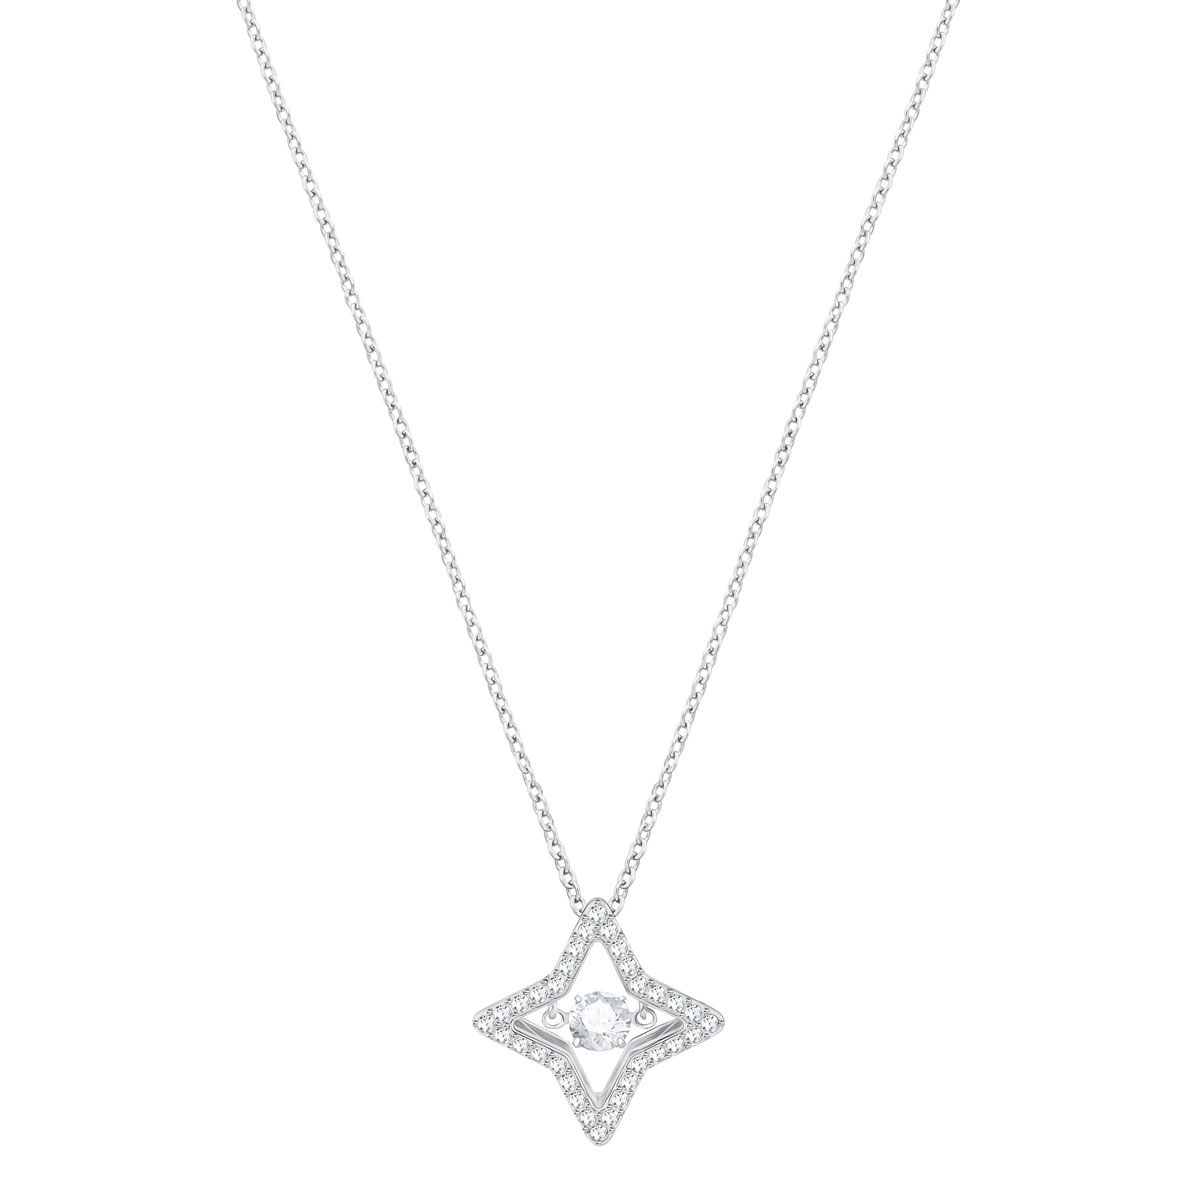 Swarovski Sparkling Dance Small Star Crystal Pendant Necklace